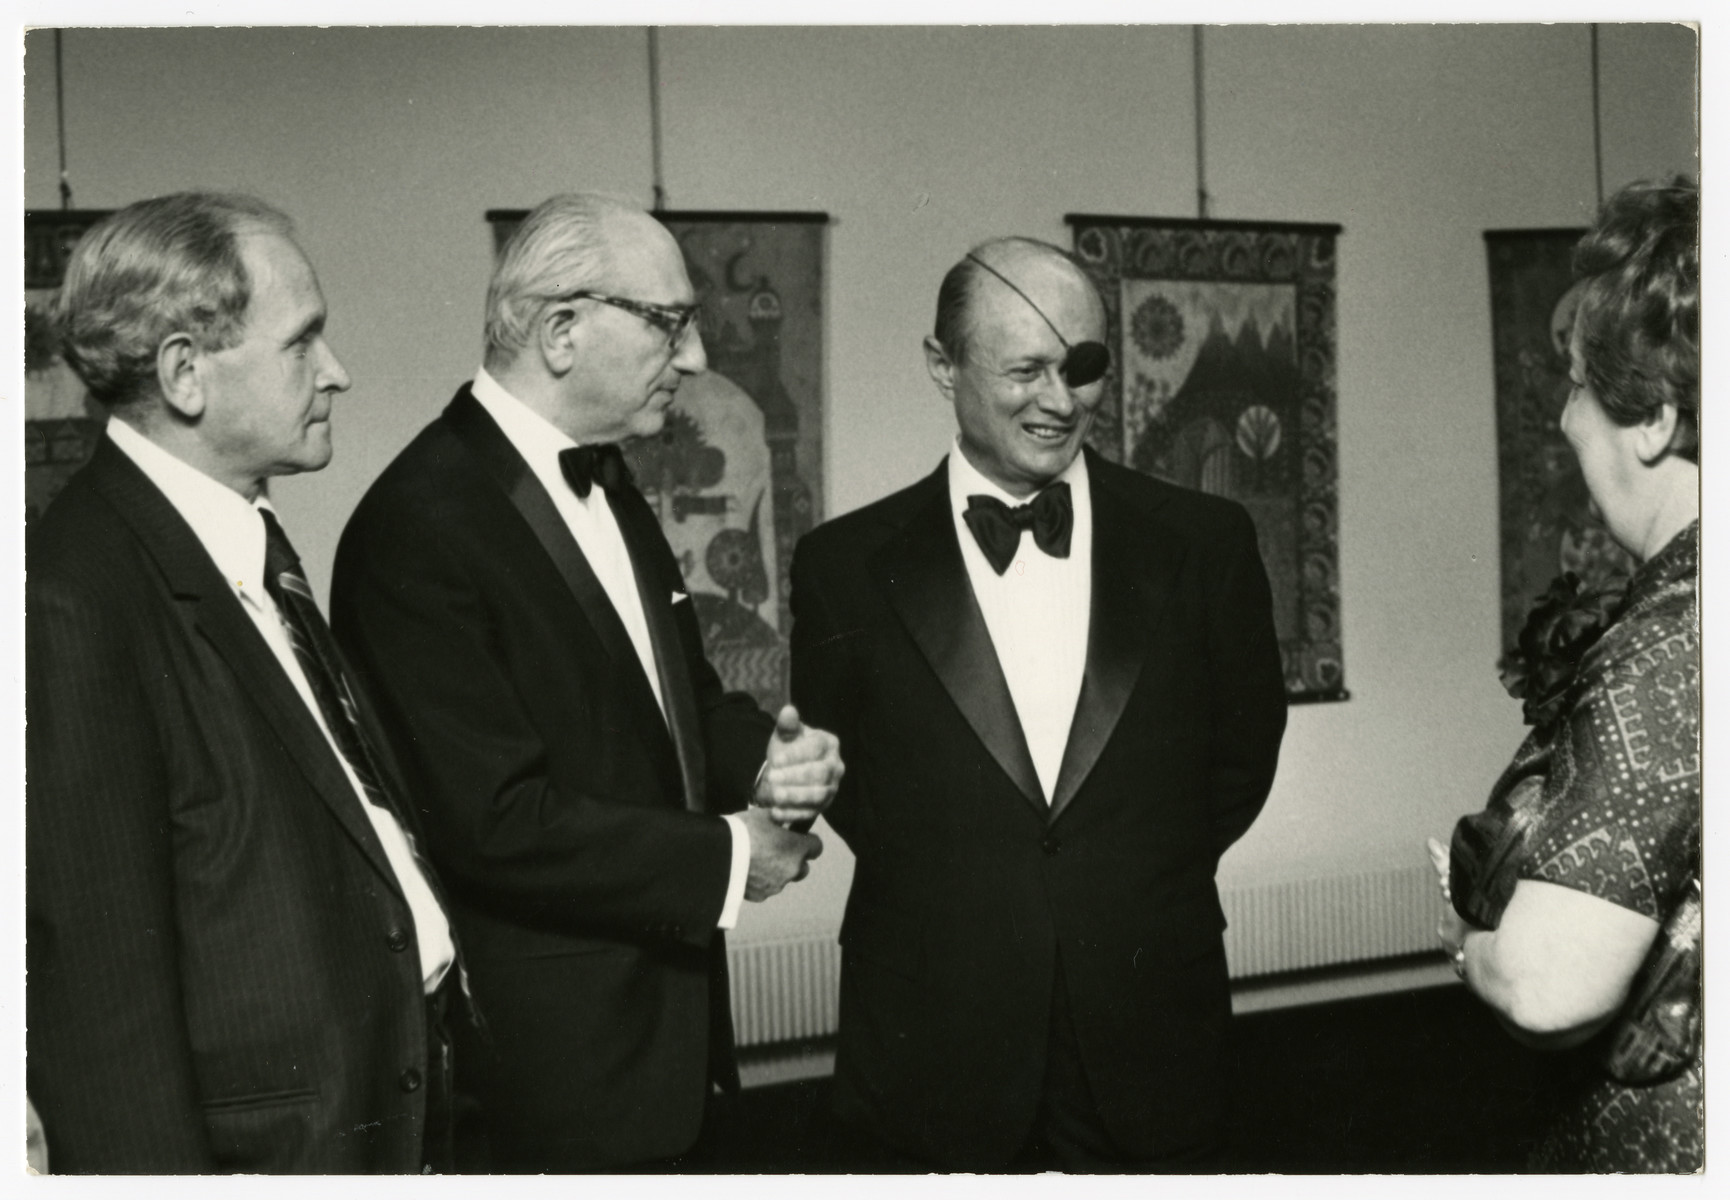 A group attends a reception in an art gallery.  Pictured are Chaim Perelman (second from the left) and Israeli General Moshe Dayan (third from the left).